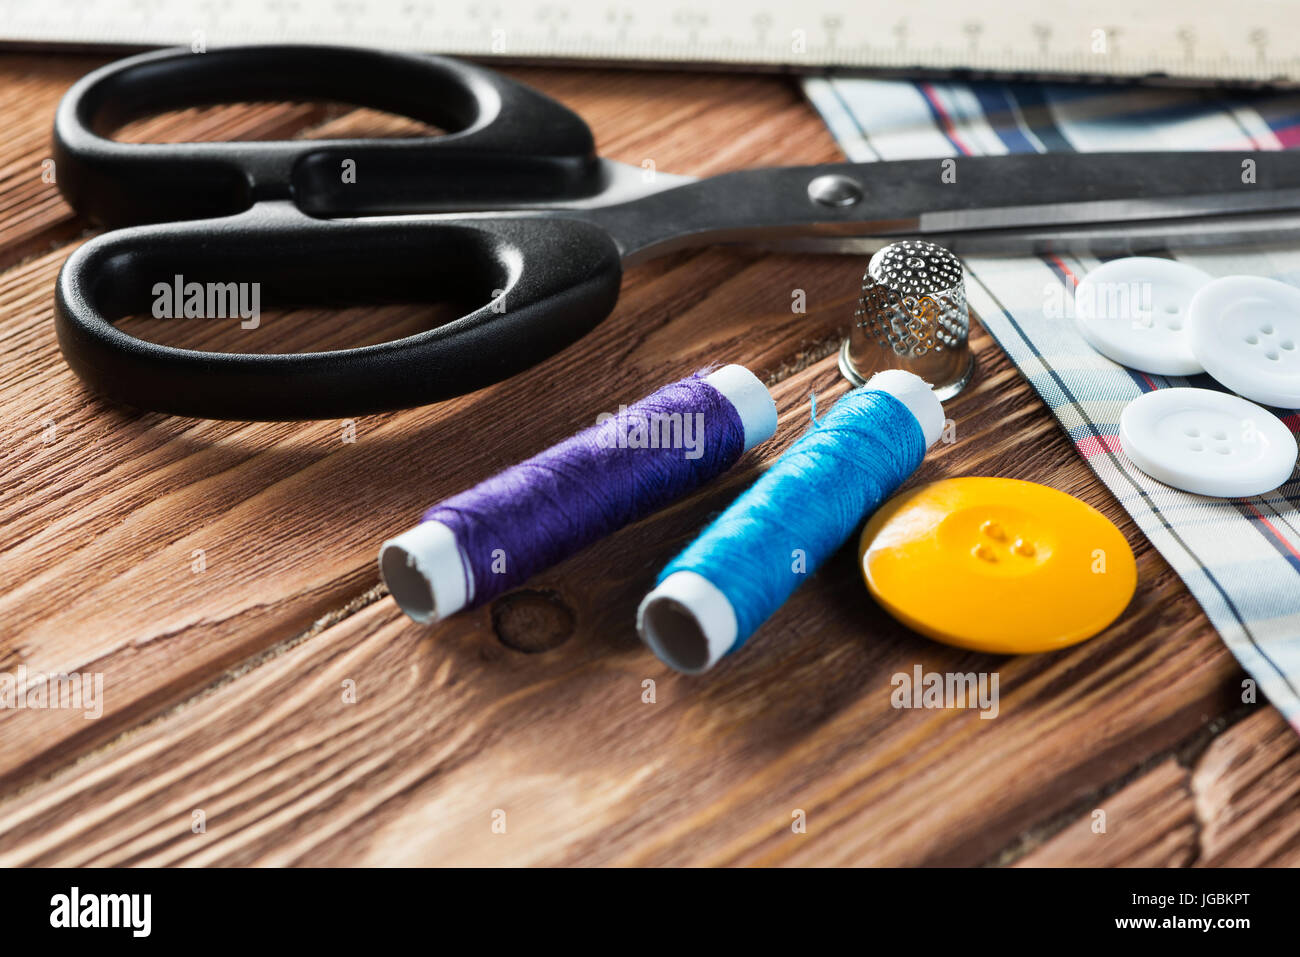 Items for sewing or DIY - Stock Image